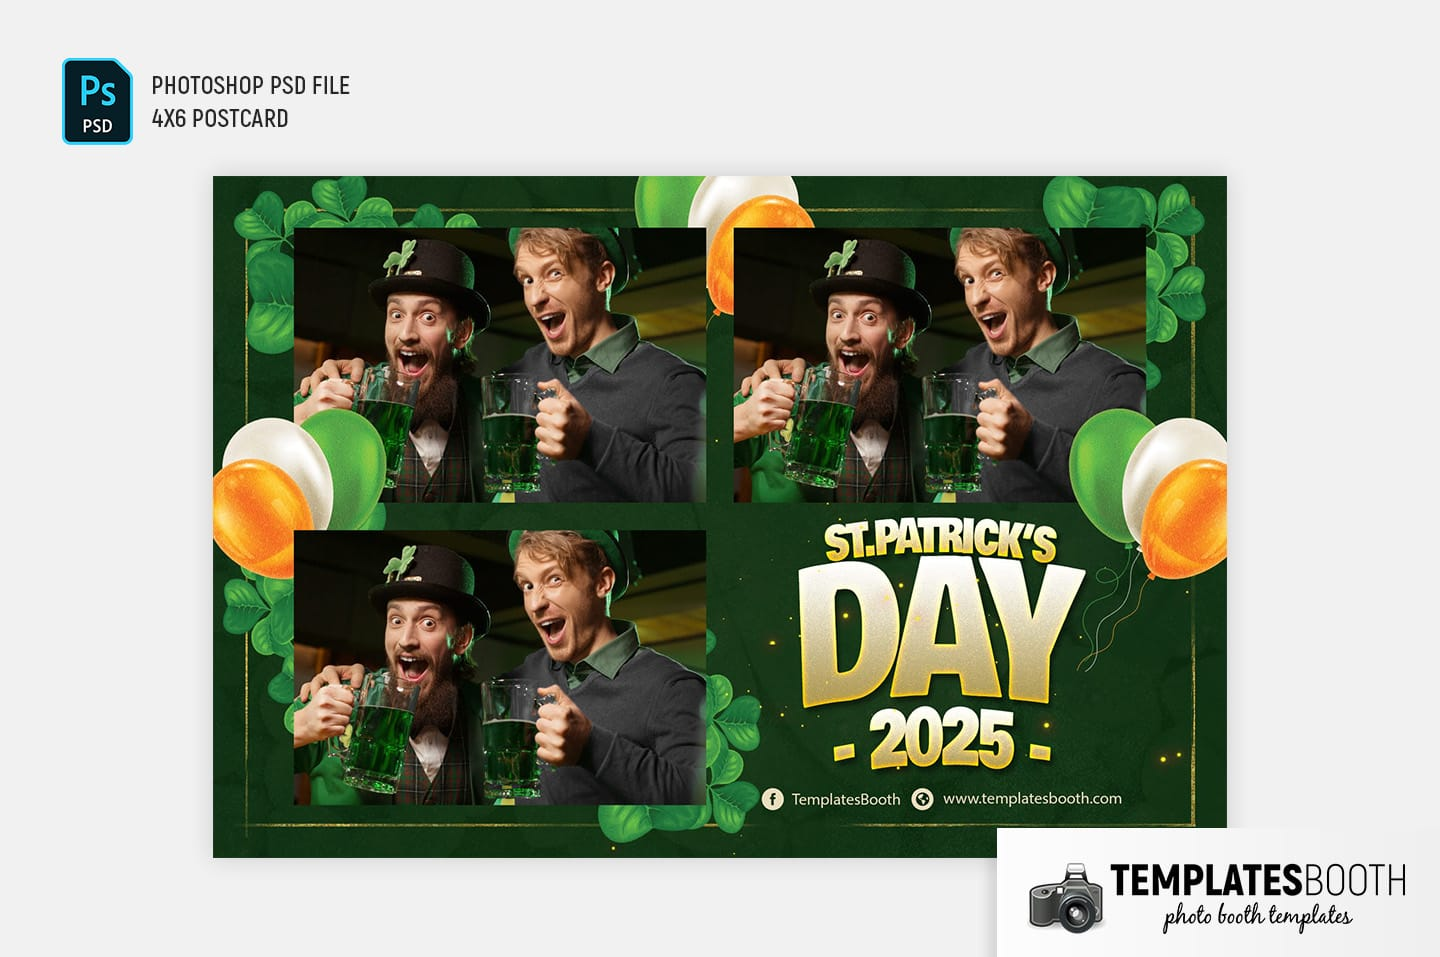 St. Patrick's Day Photo Booth Template (4x6 postcard landscape)